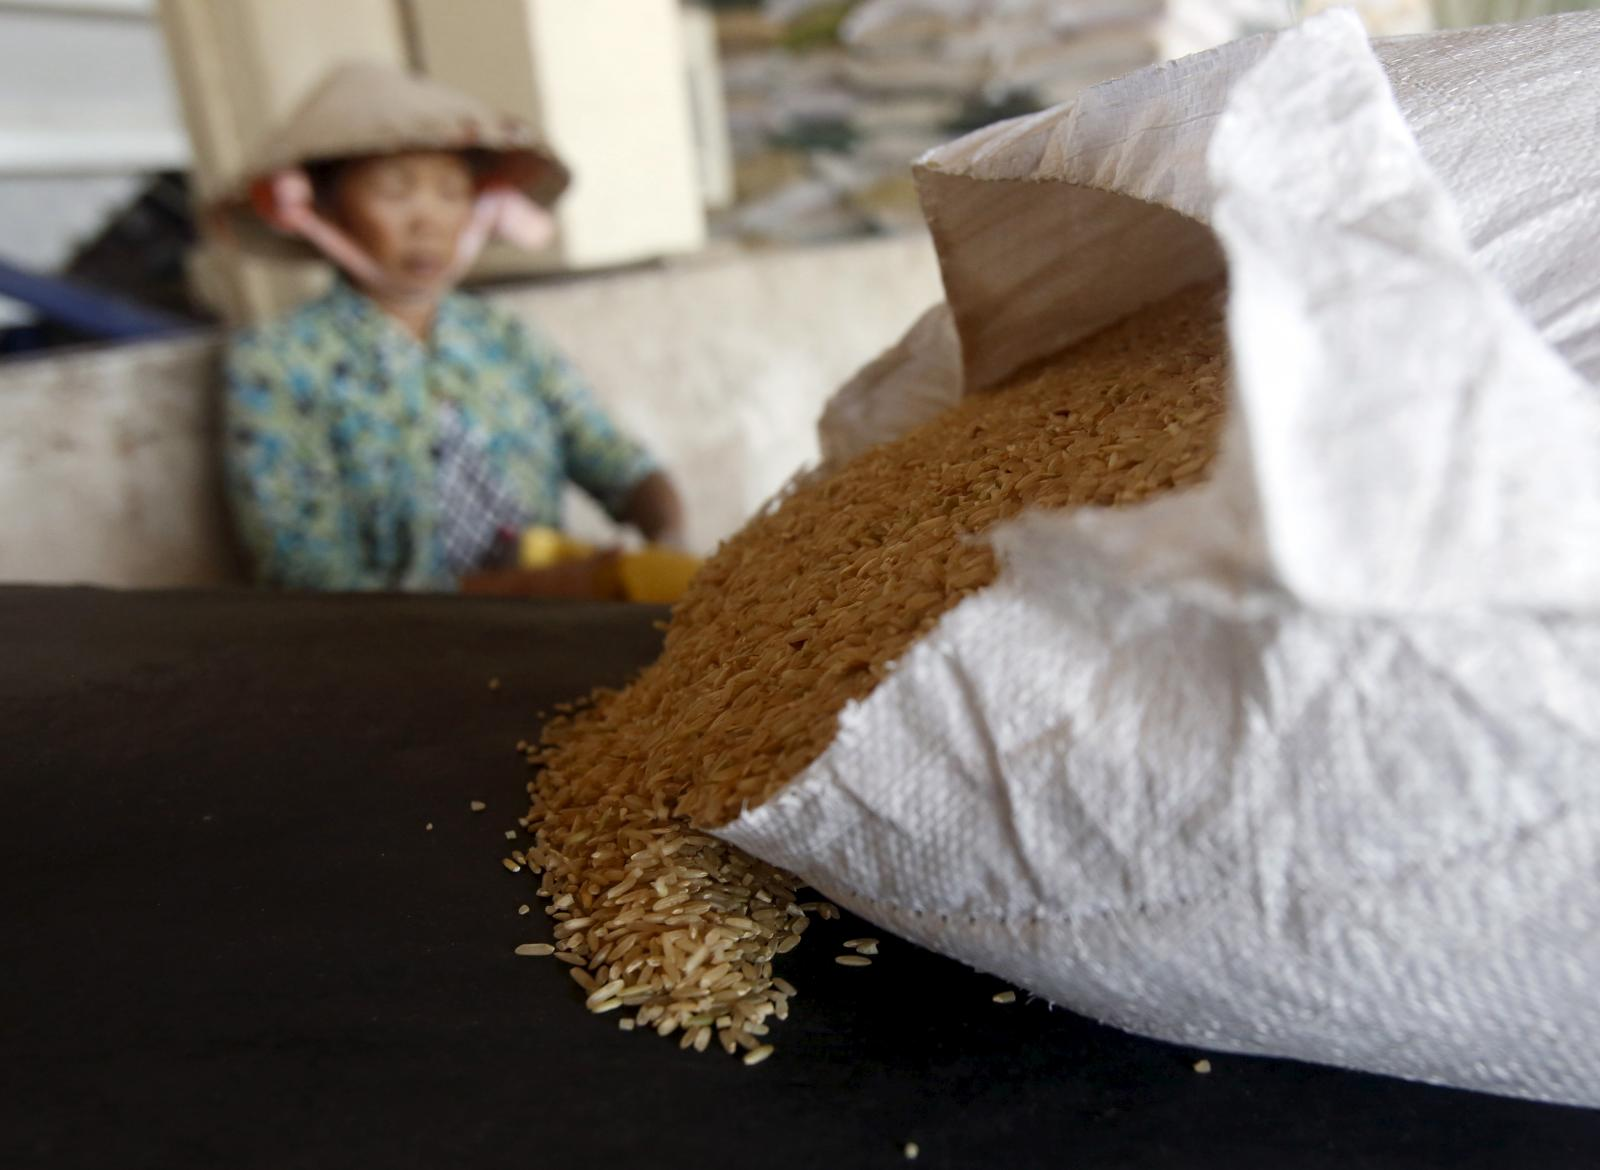 Philippines set to import 1.2 mln T of rice as caps removed